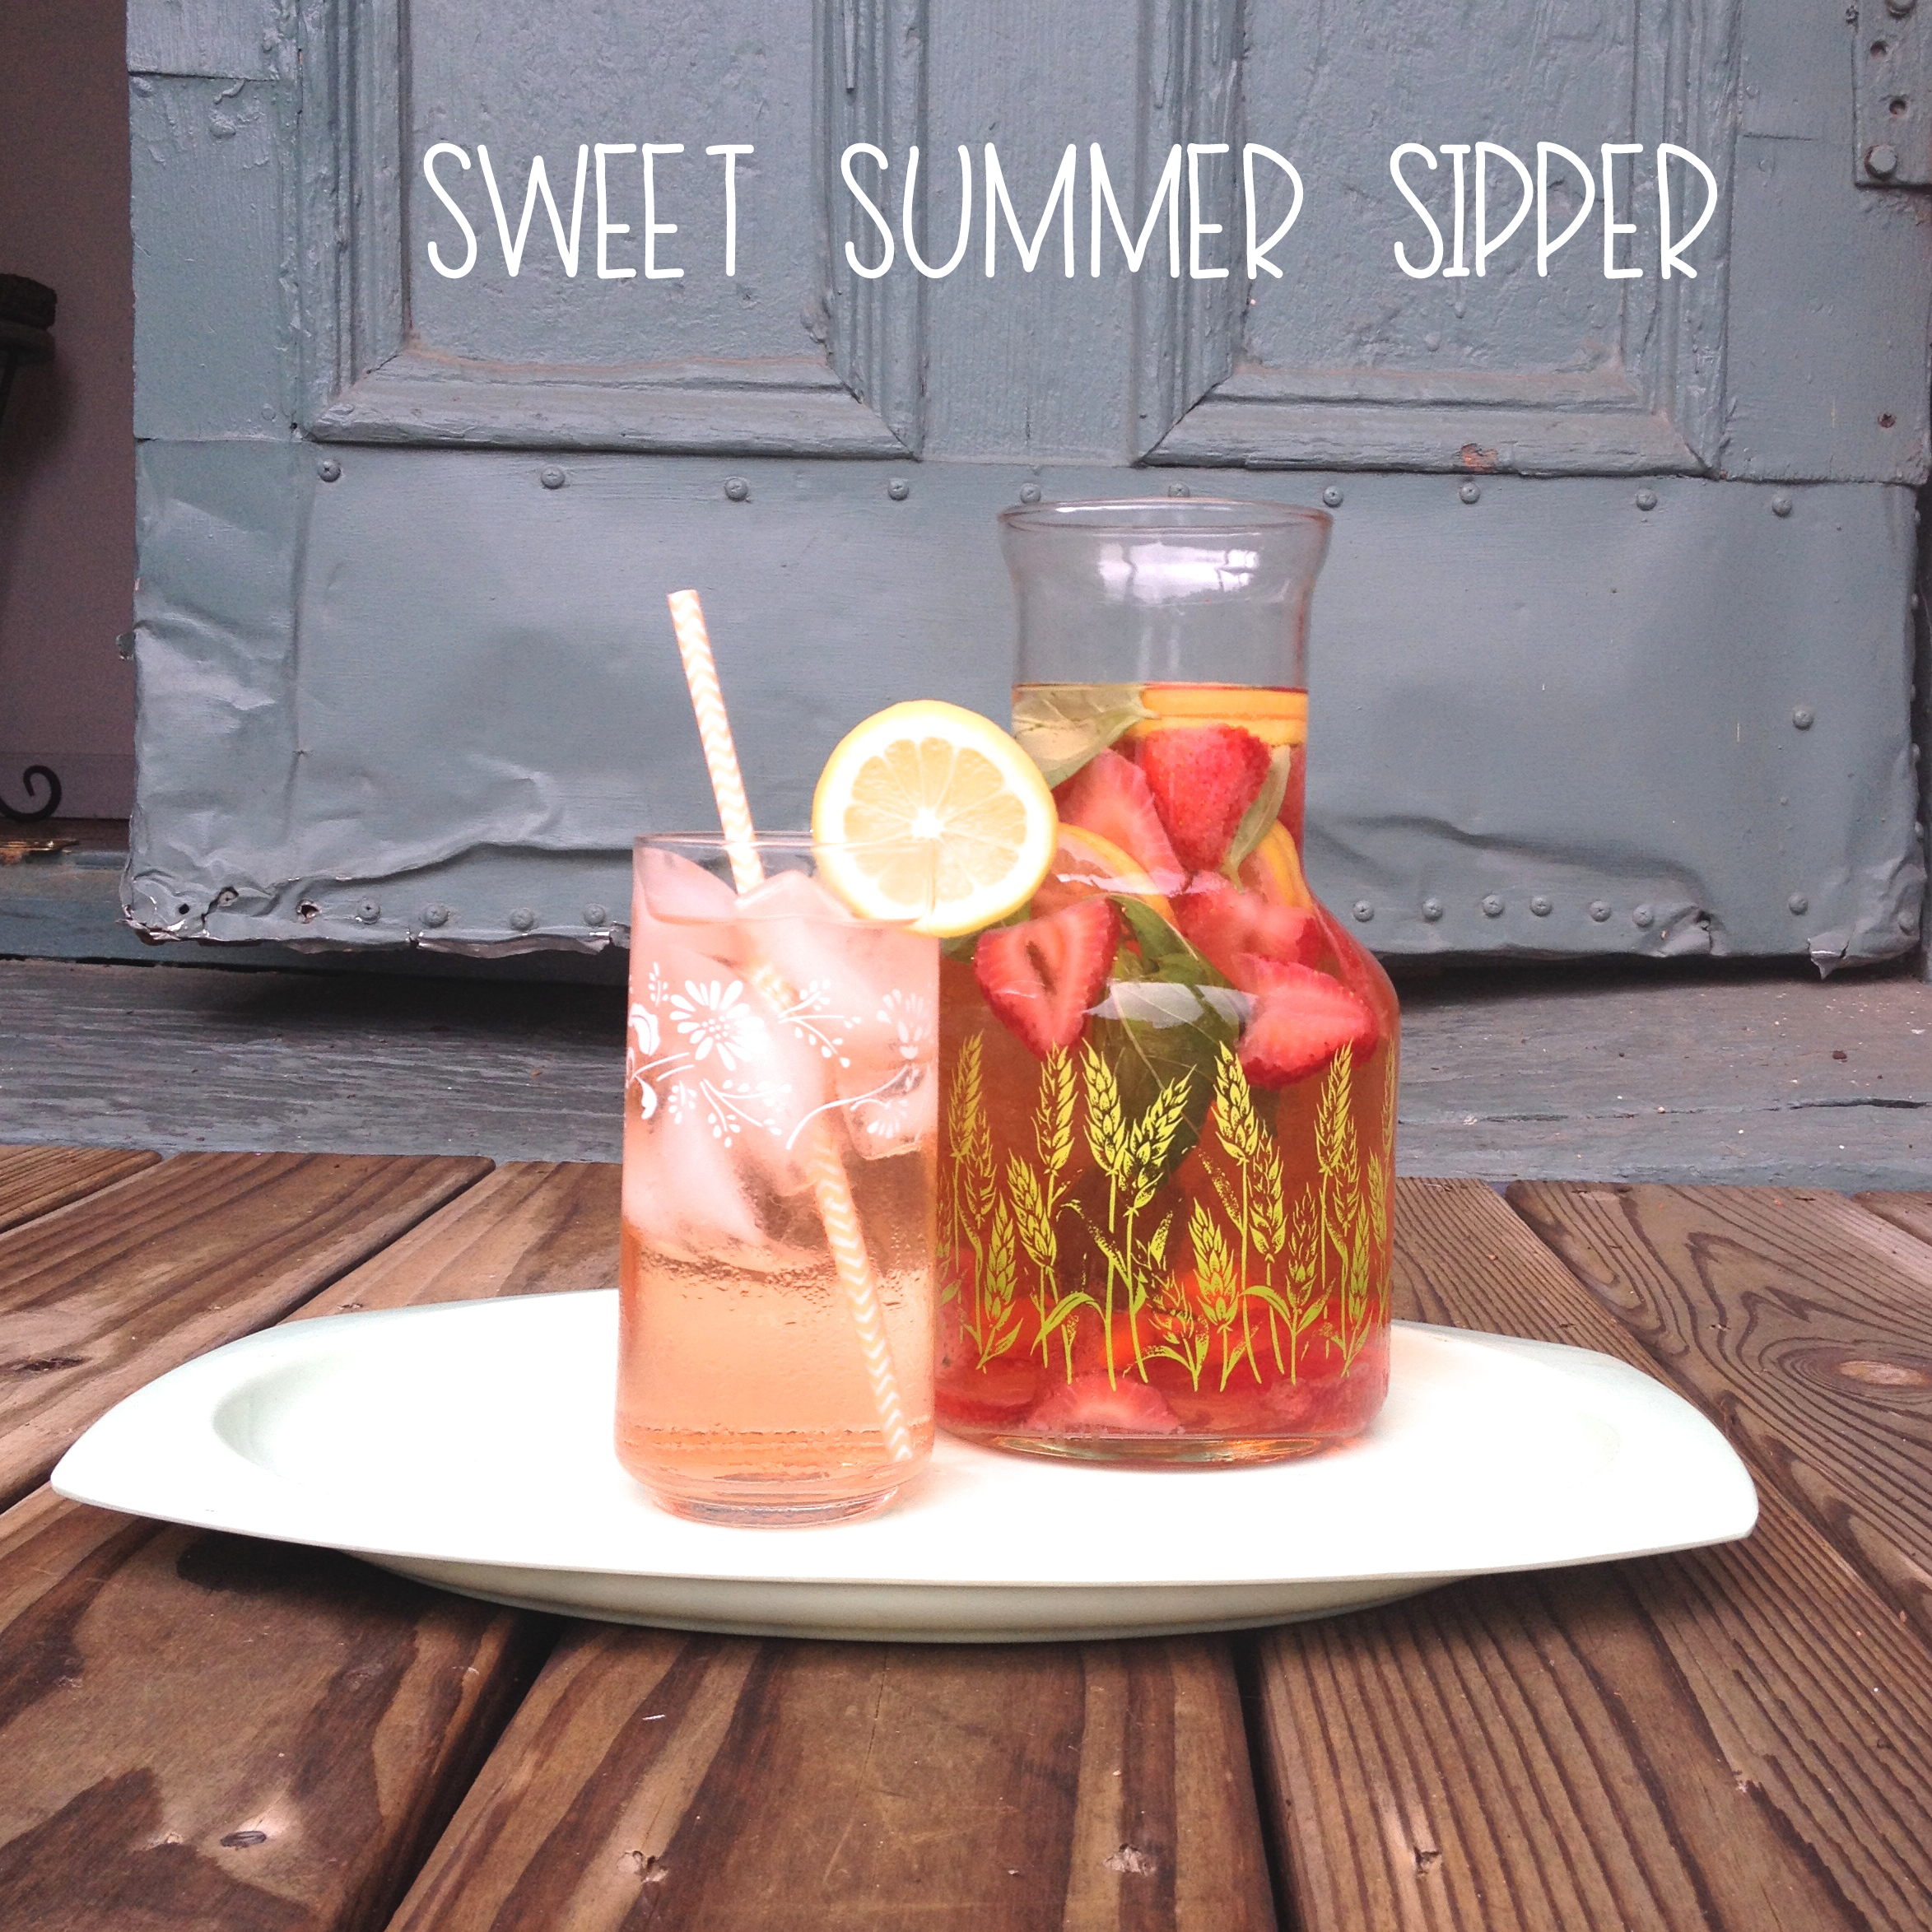 Sweet Summer Sipper